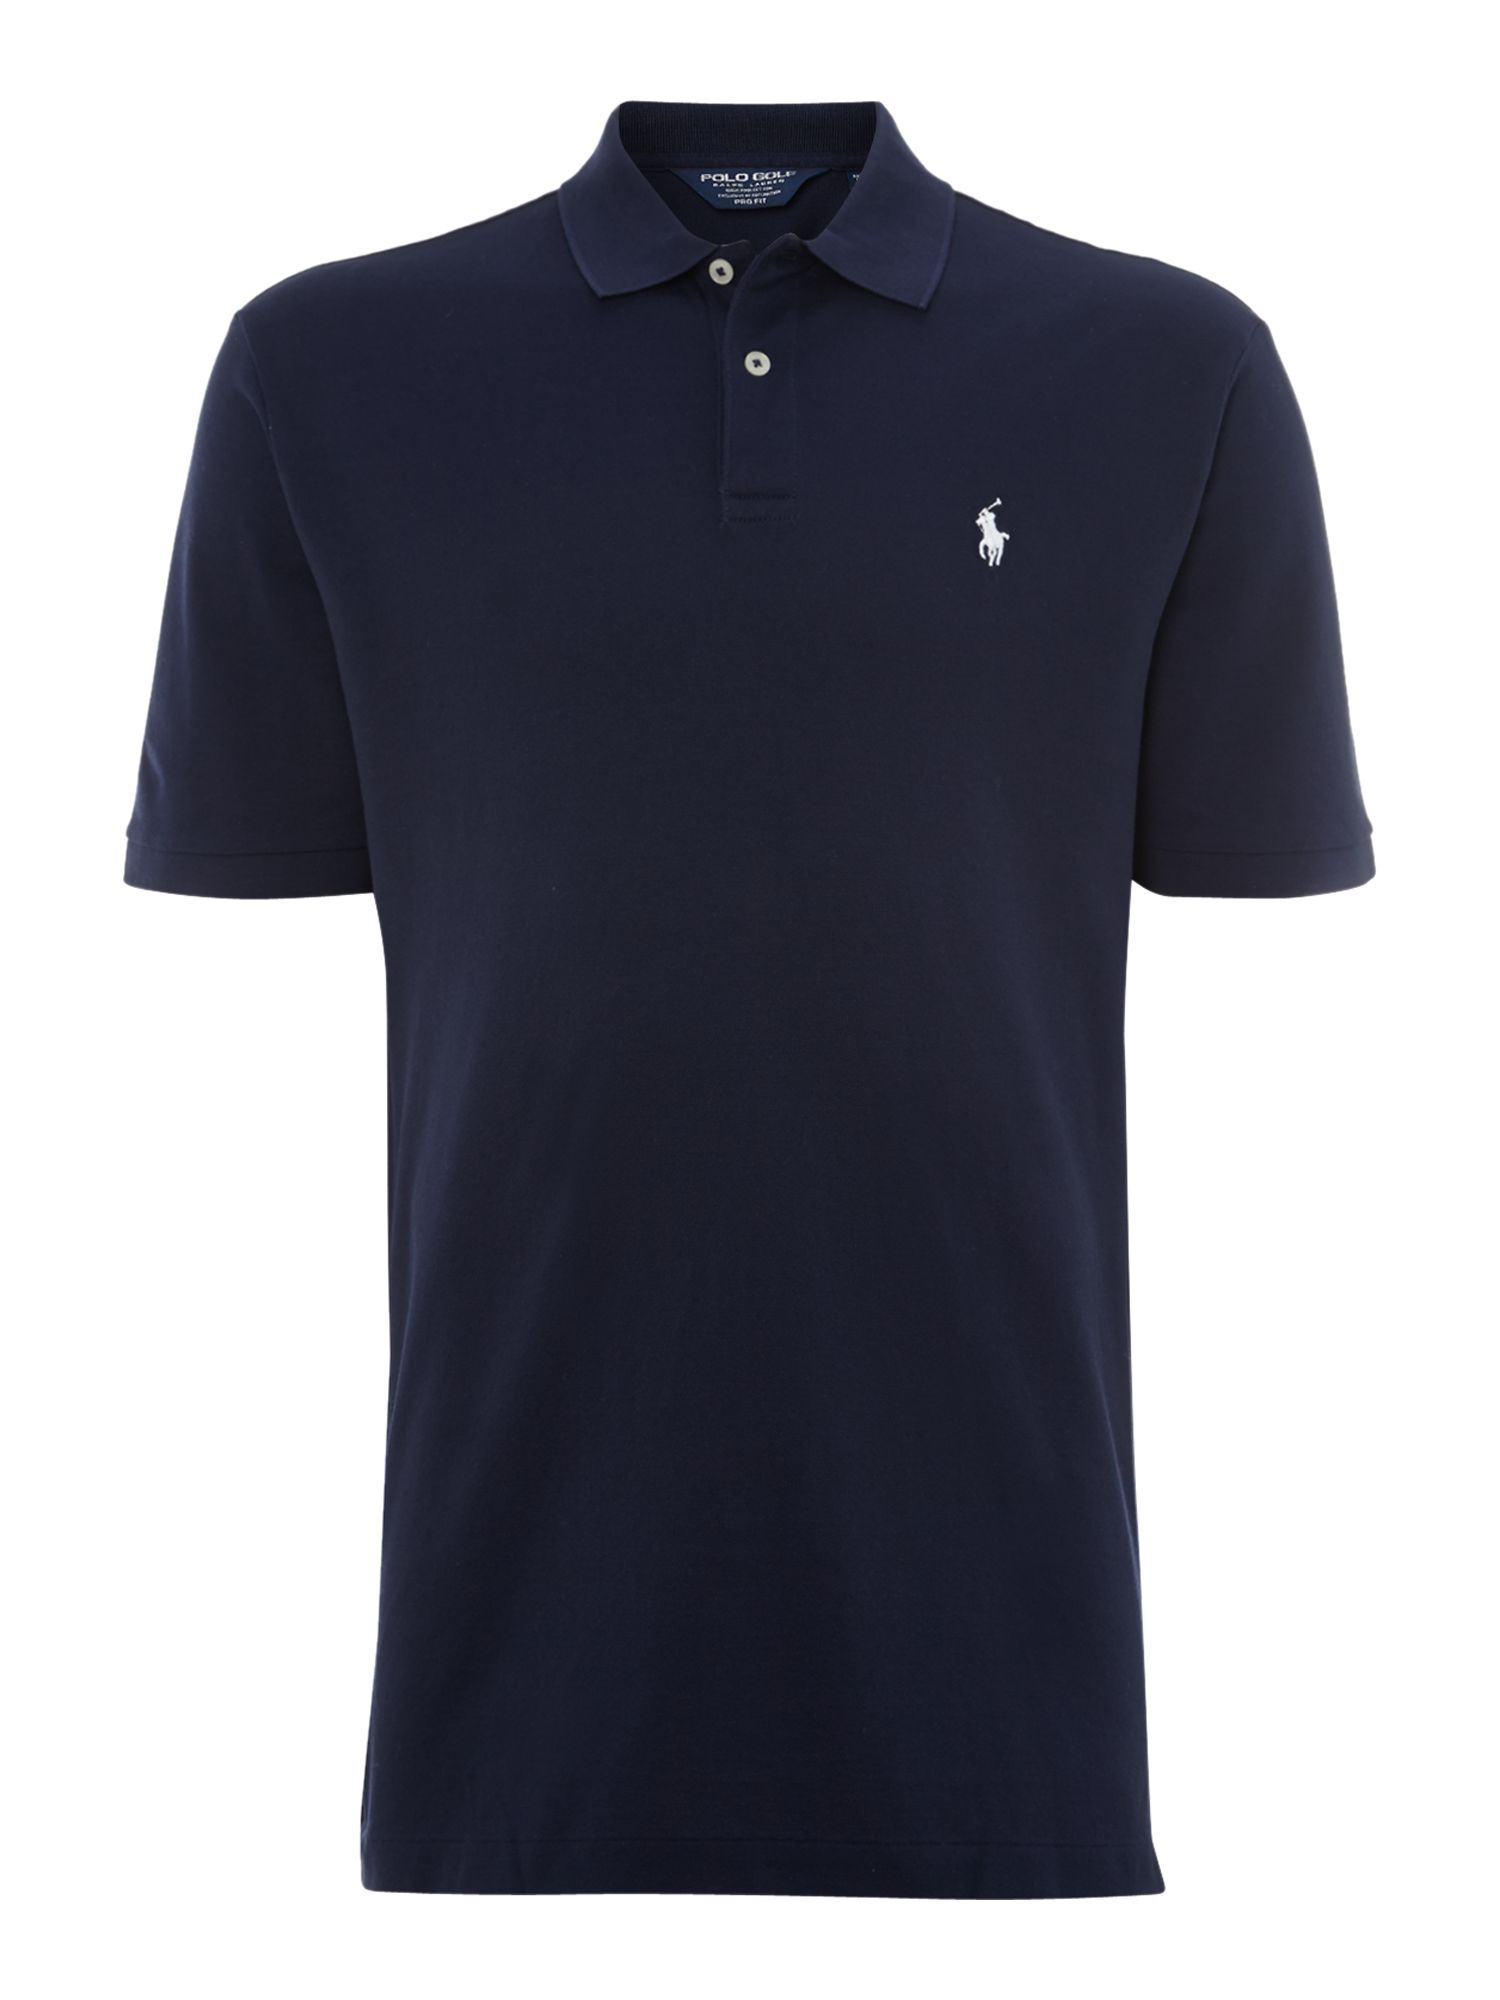 Classic pro fit polo shirt